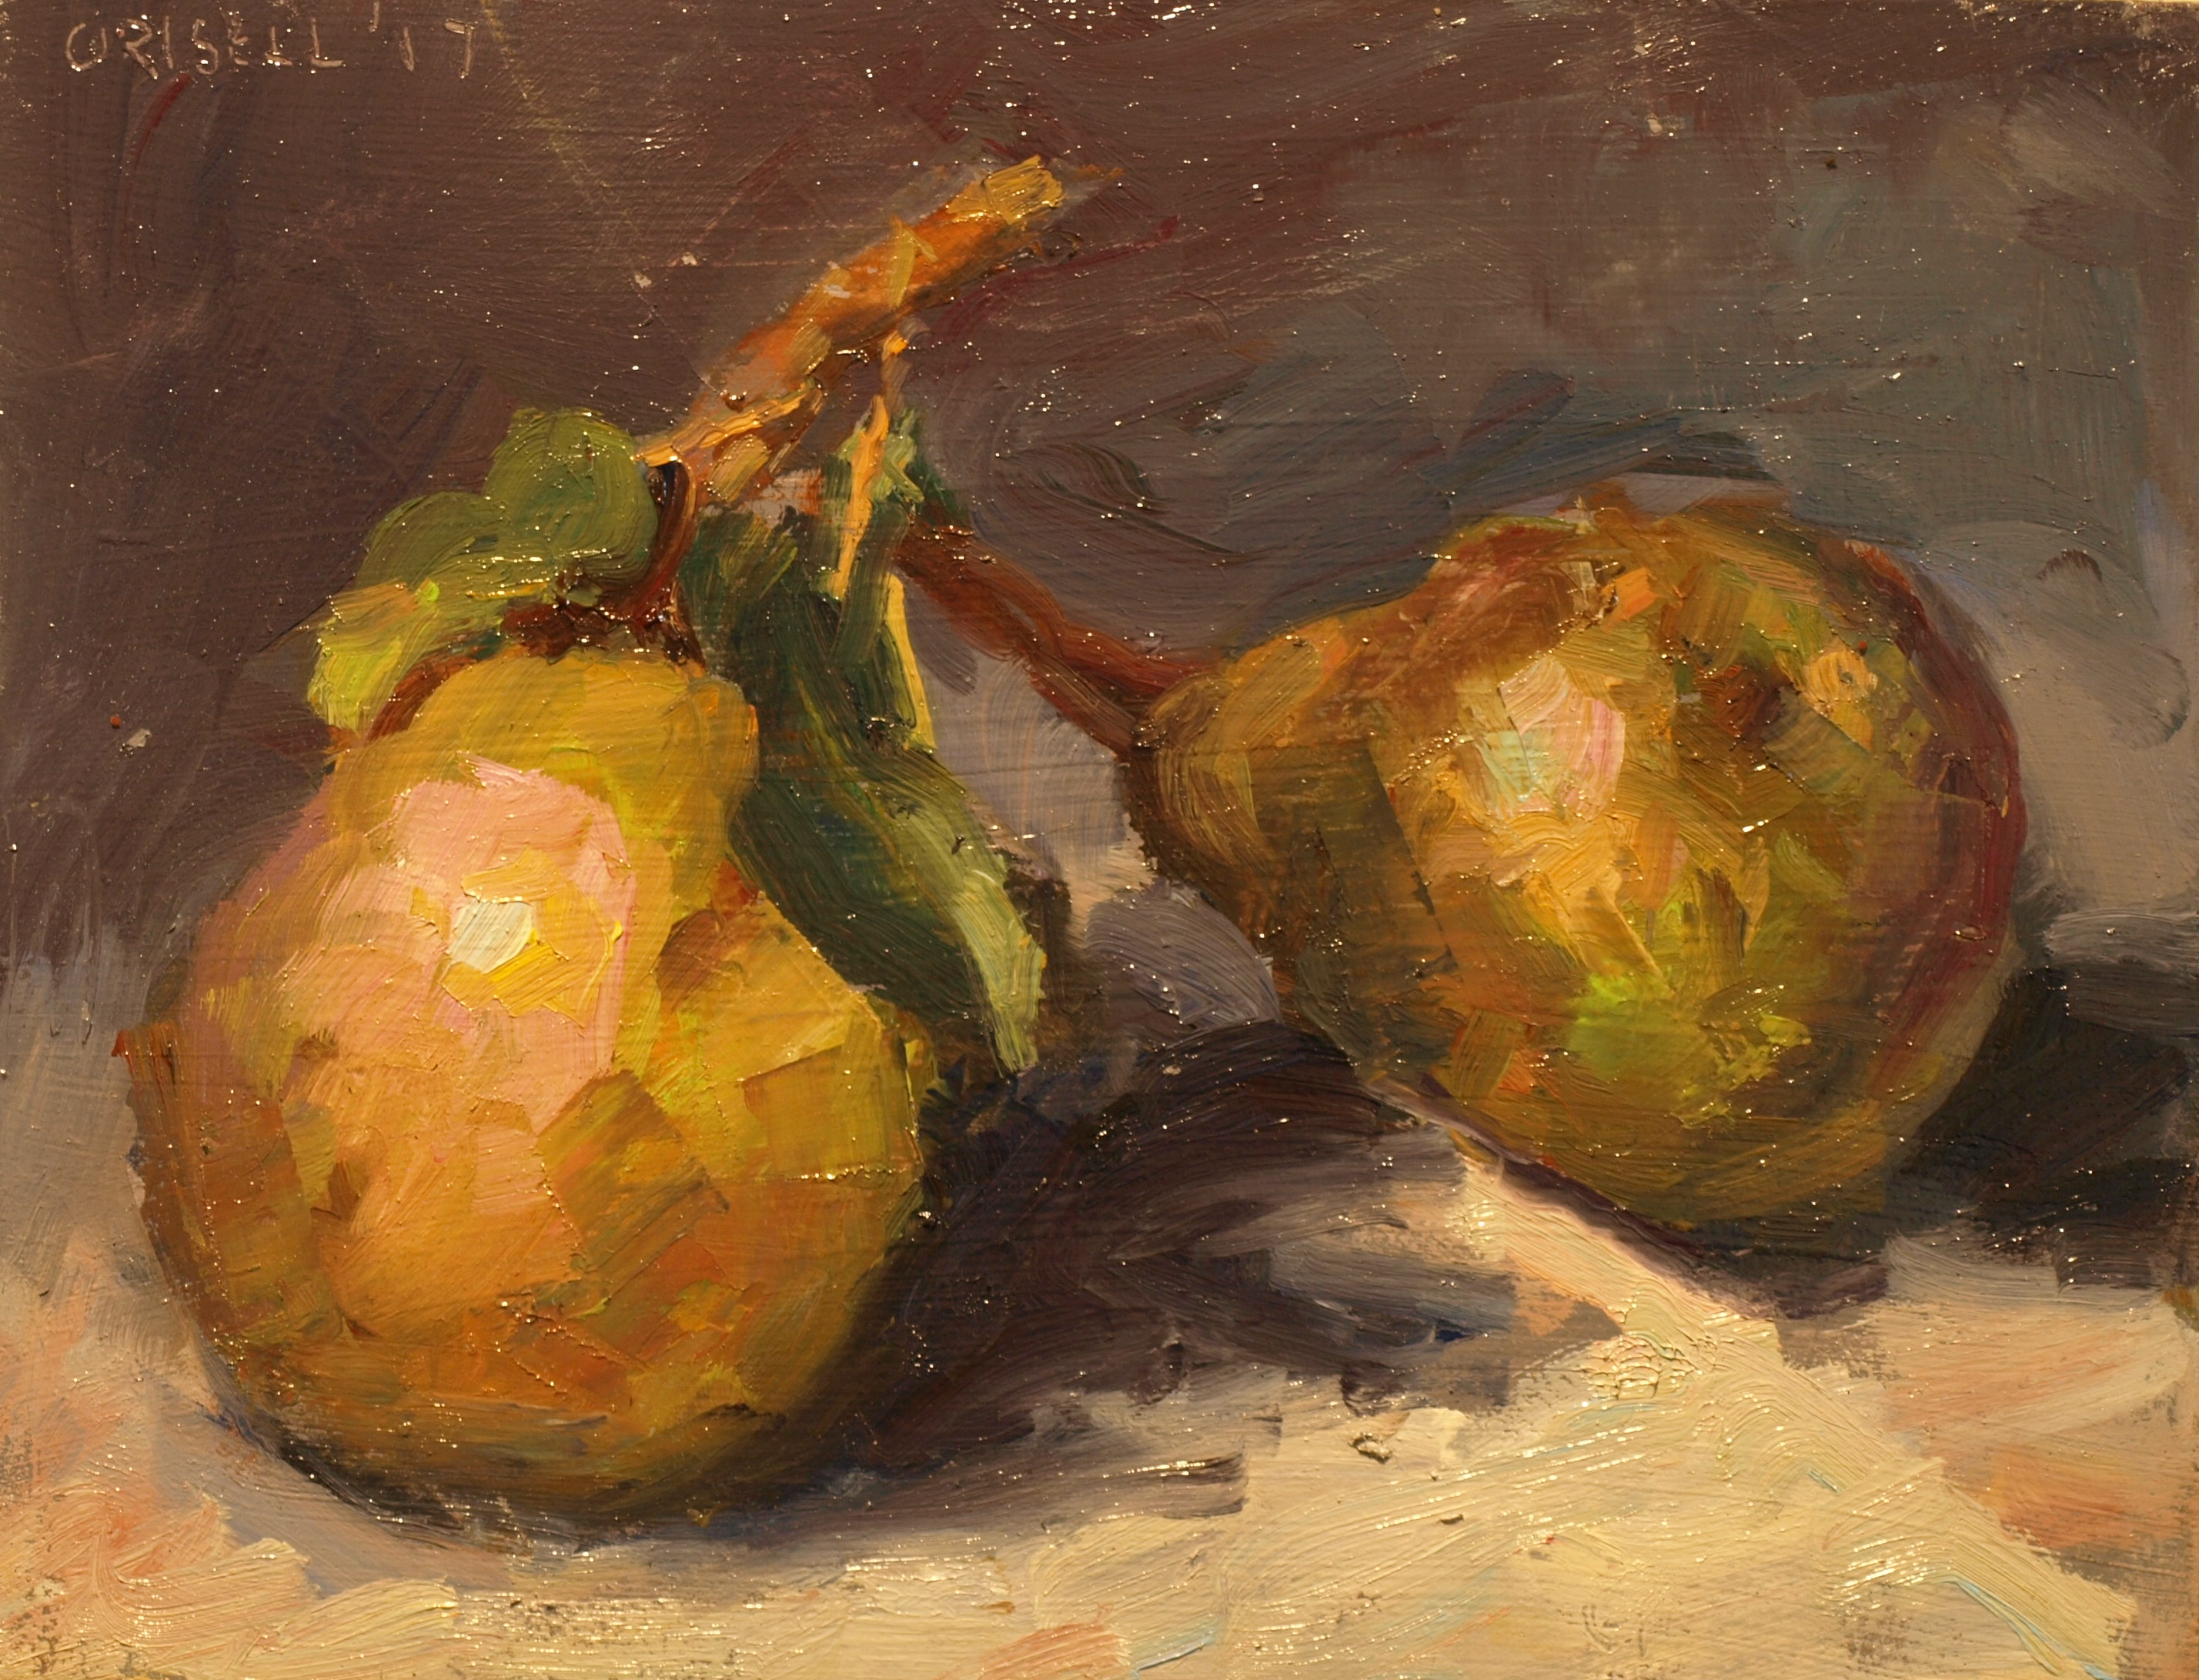 Two Pairs, Oil on Panel, 8 x 10 Inches, by Susan Grisell, $175